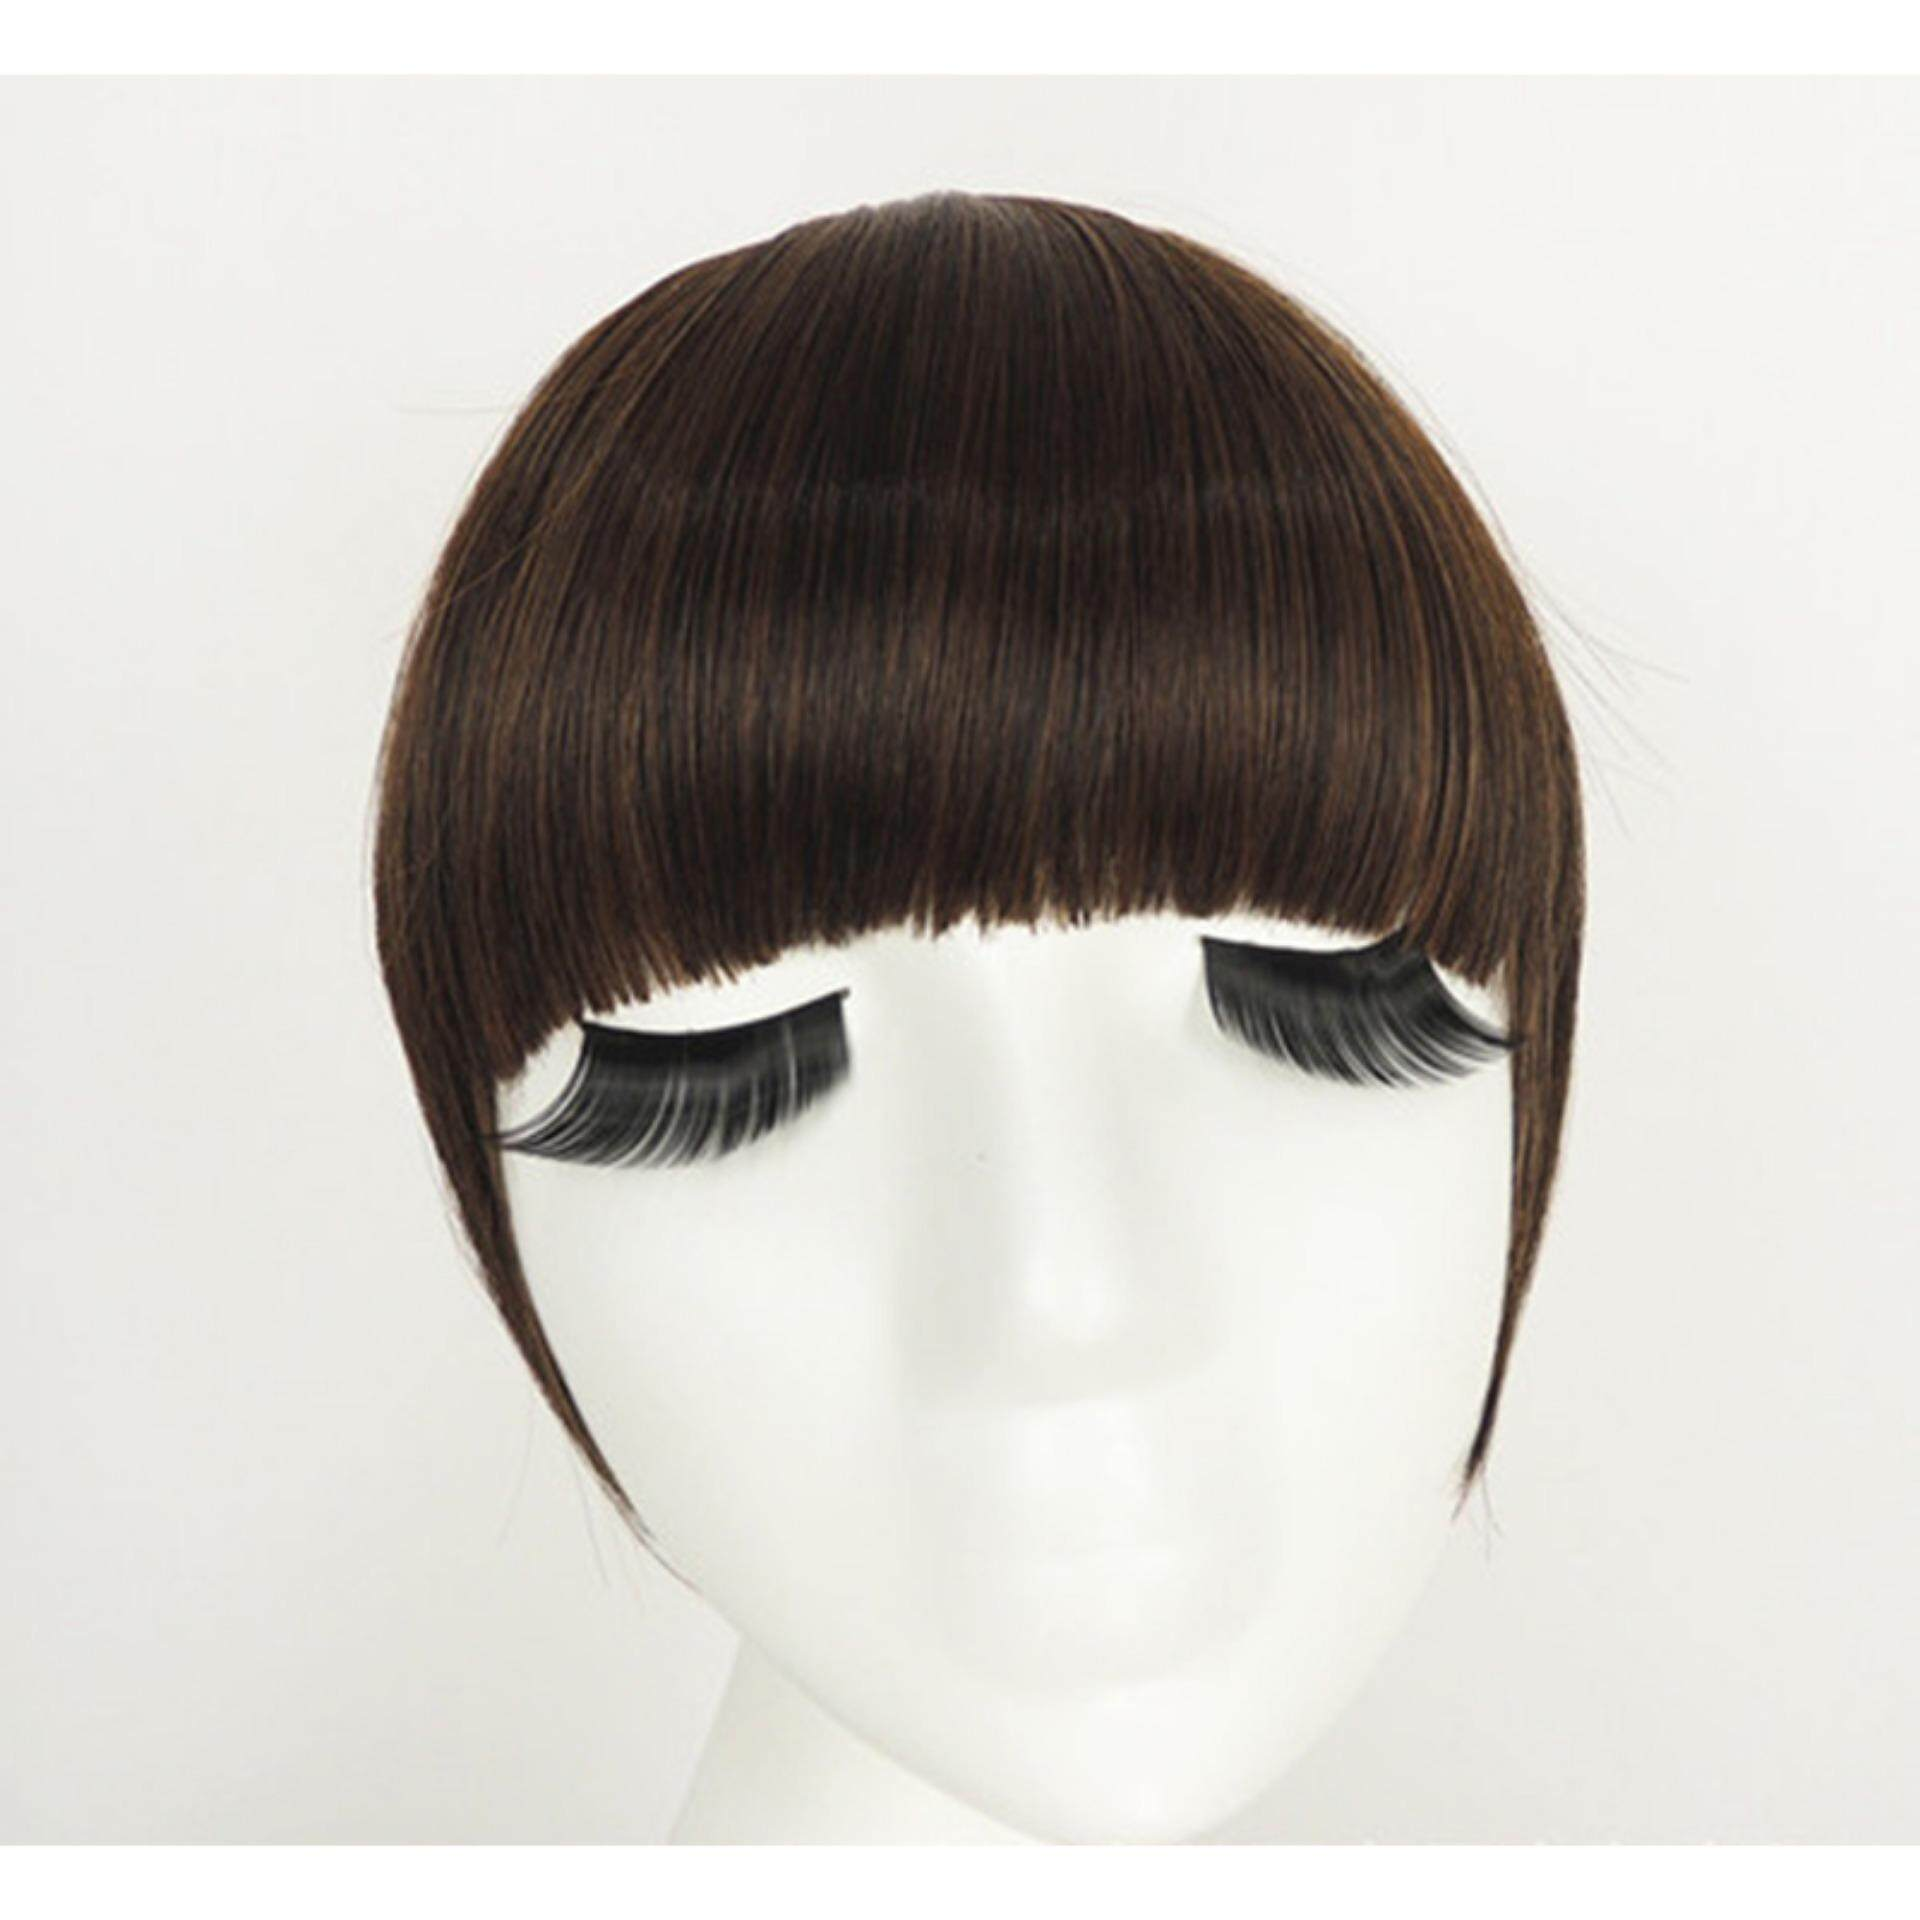 Fringe Clip In On Bangs Straight Hair Extensions Brown Black Like Human Hair Nature Balck - intl